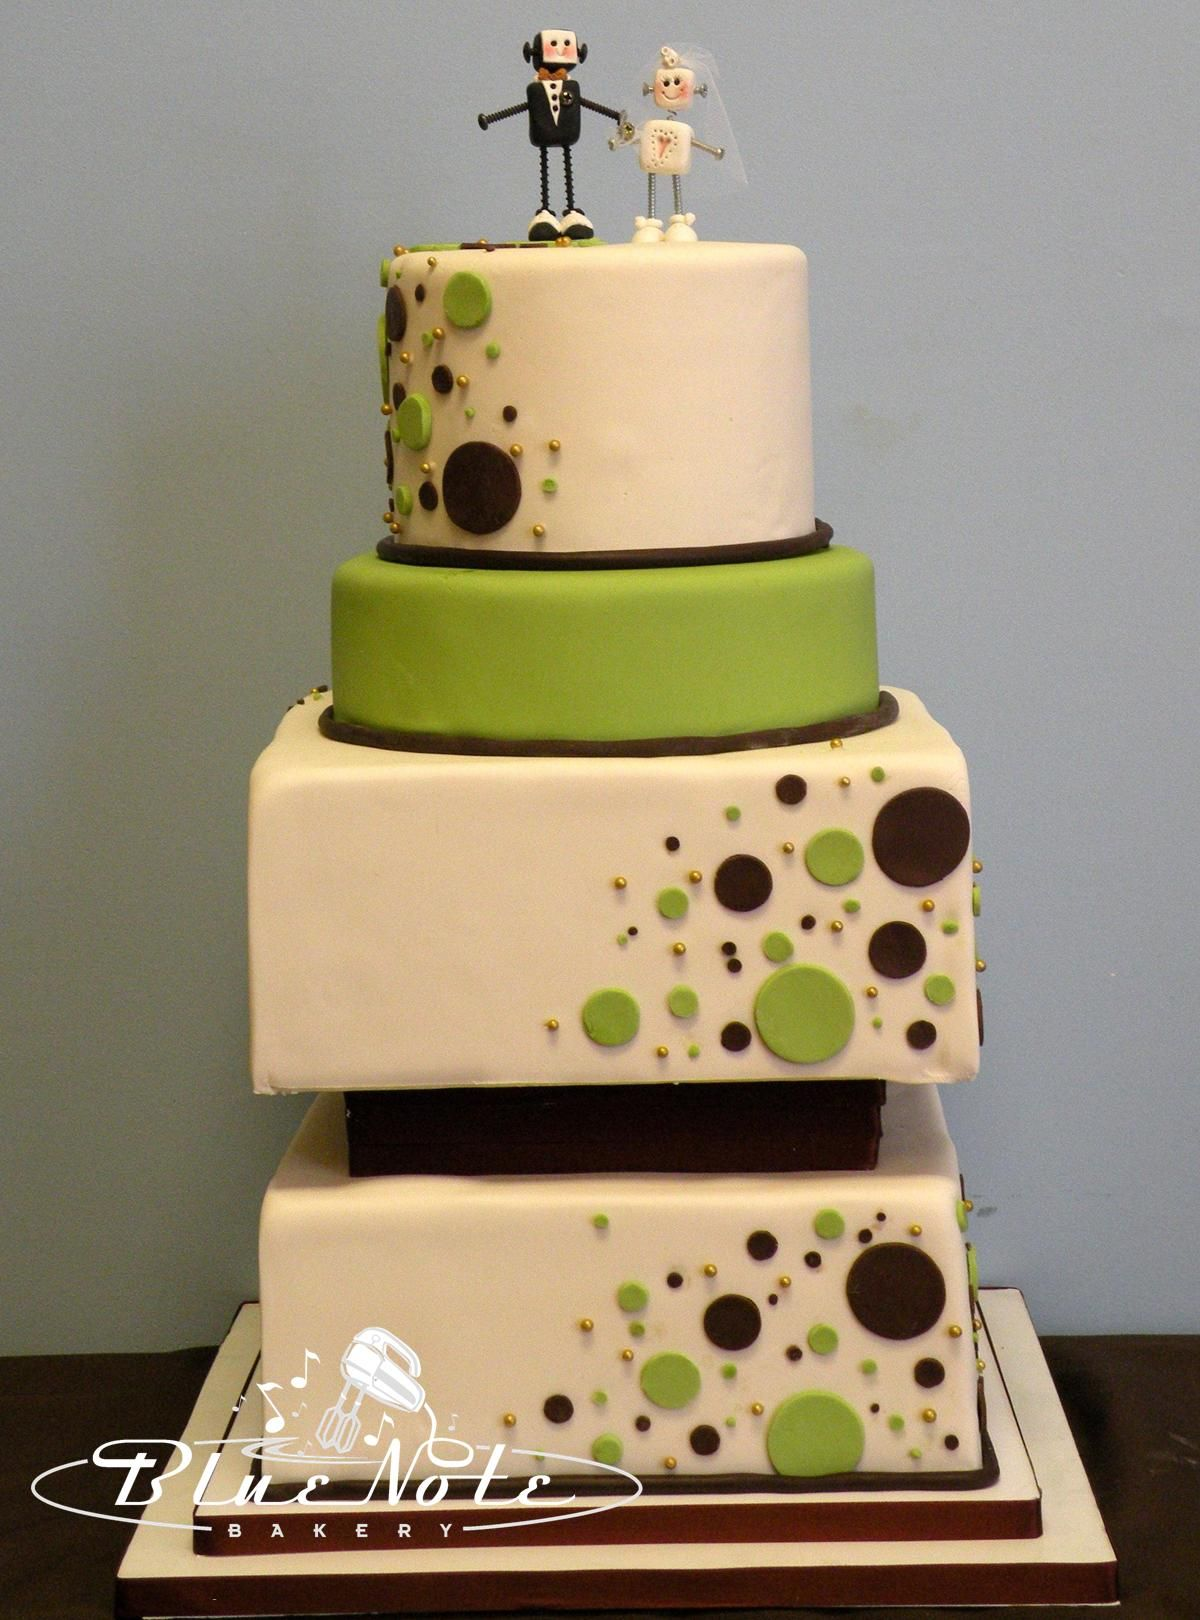 robots and polka dots - green & brown wedding cake | Blue Note ...